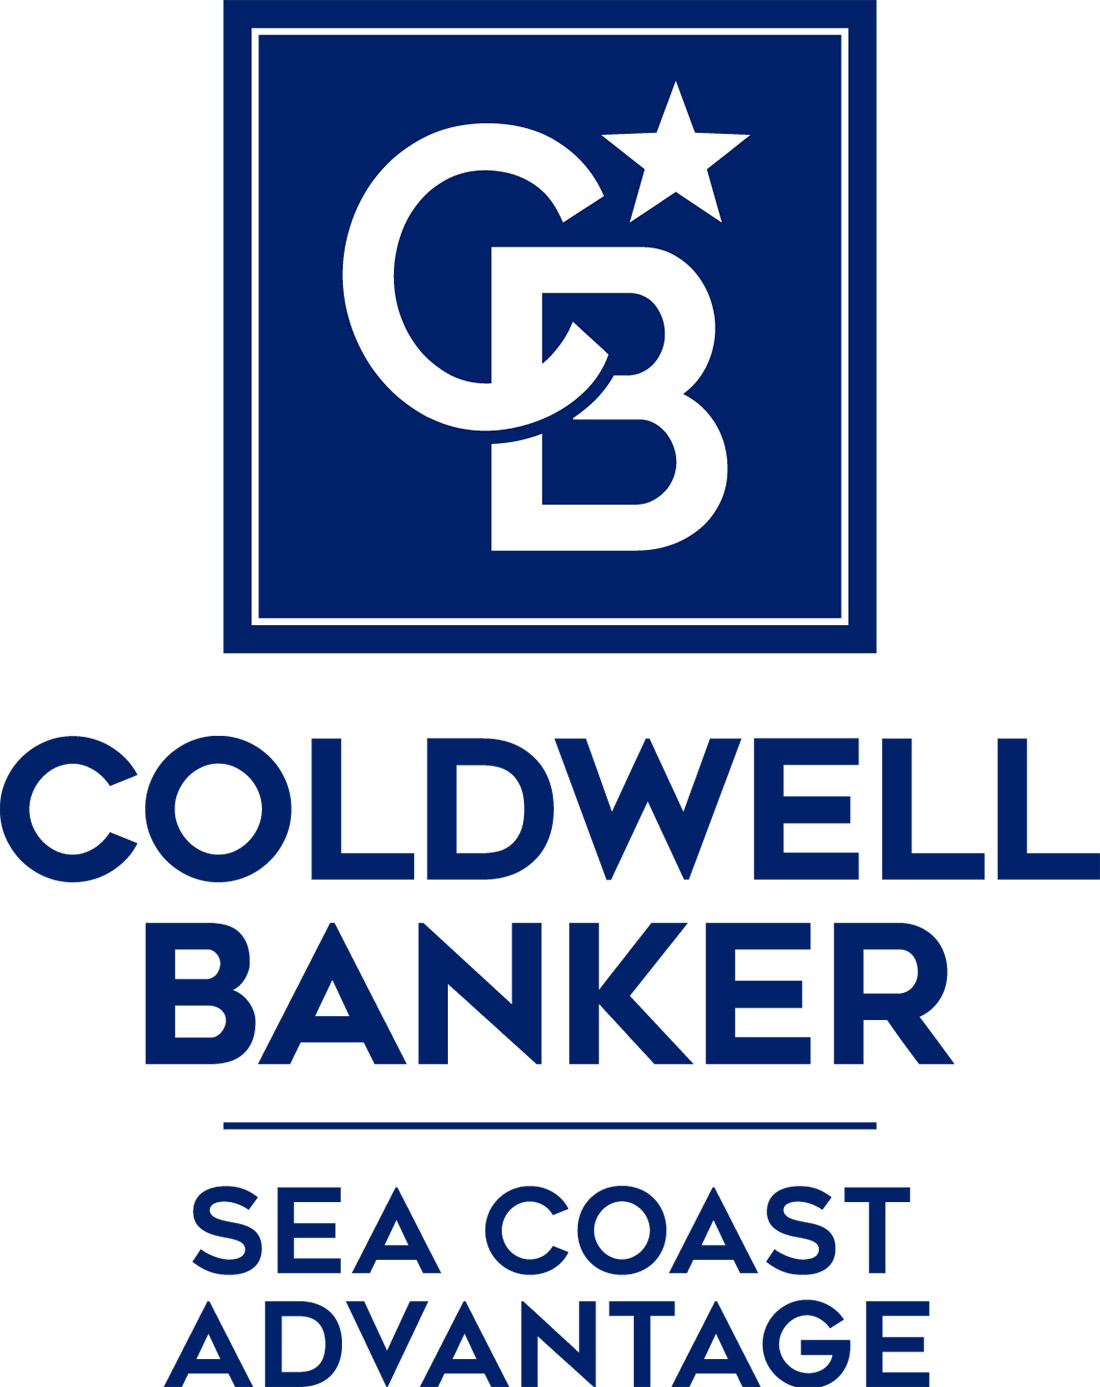 Lisa Damico - Coldwell Banker Sea Coast Advantage Realty